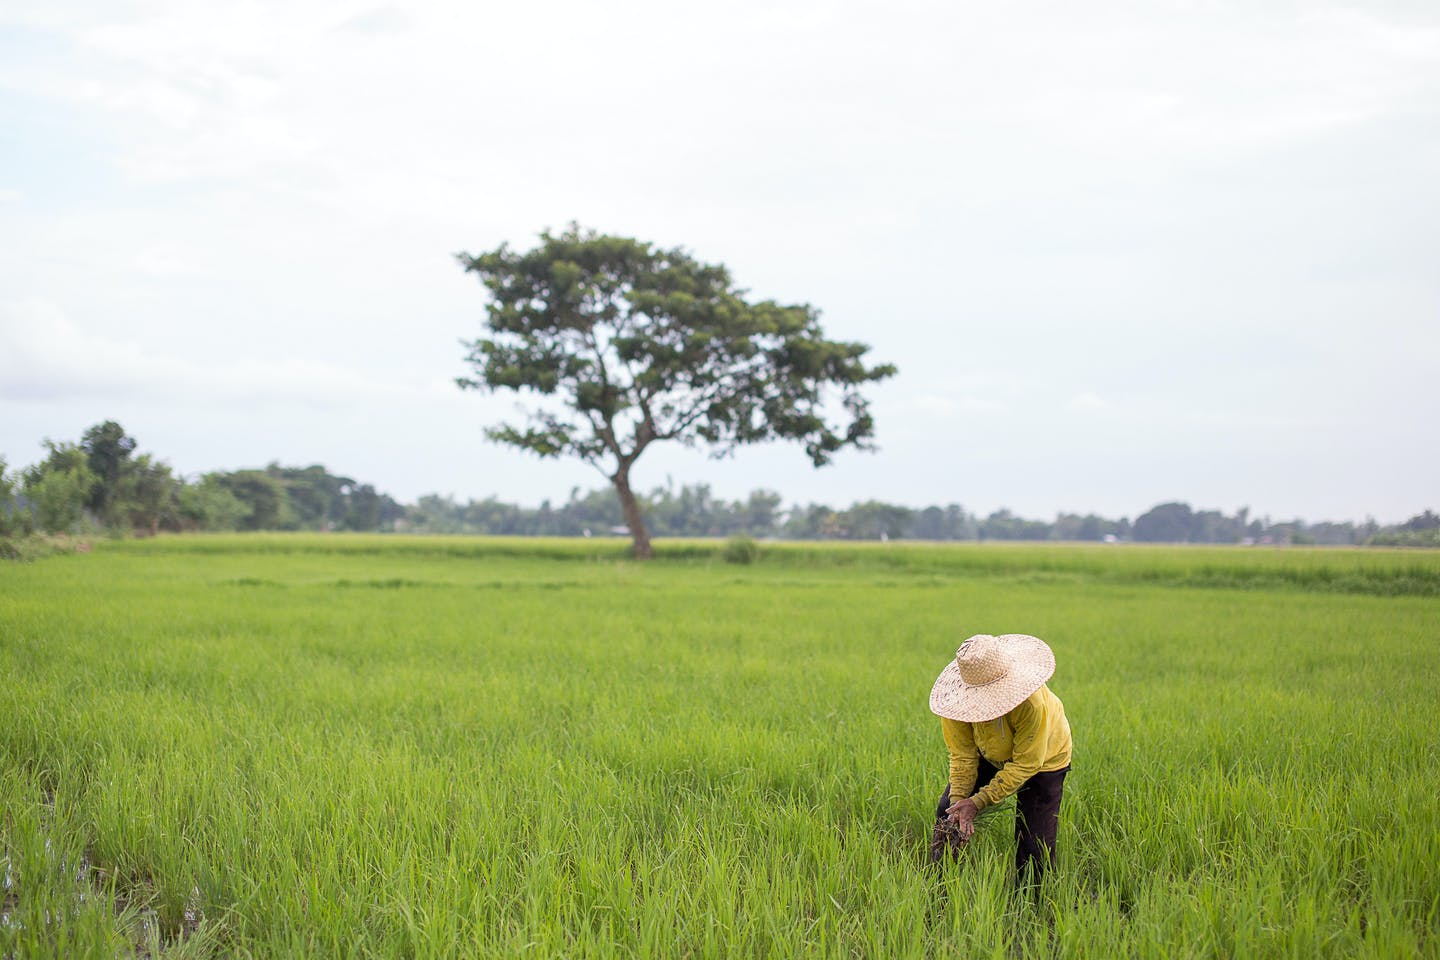 Farmer in the Philippines planting rice